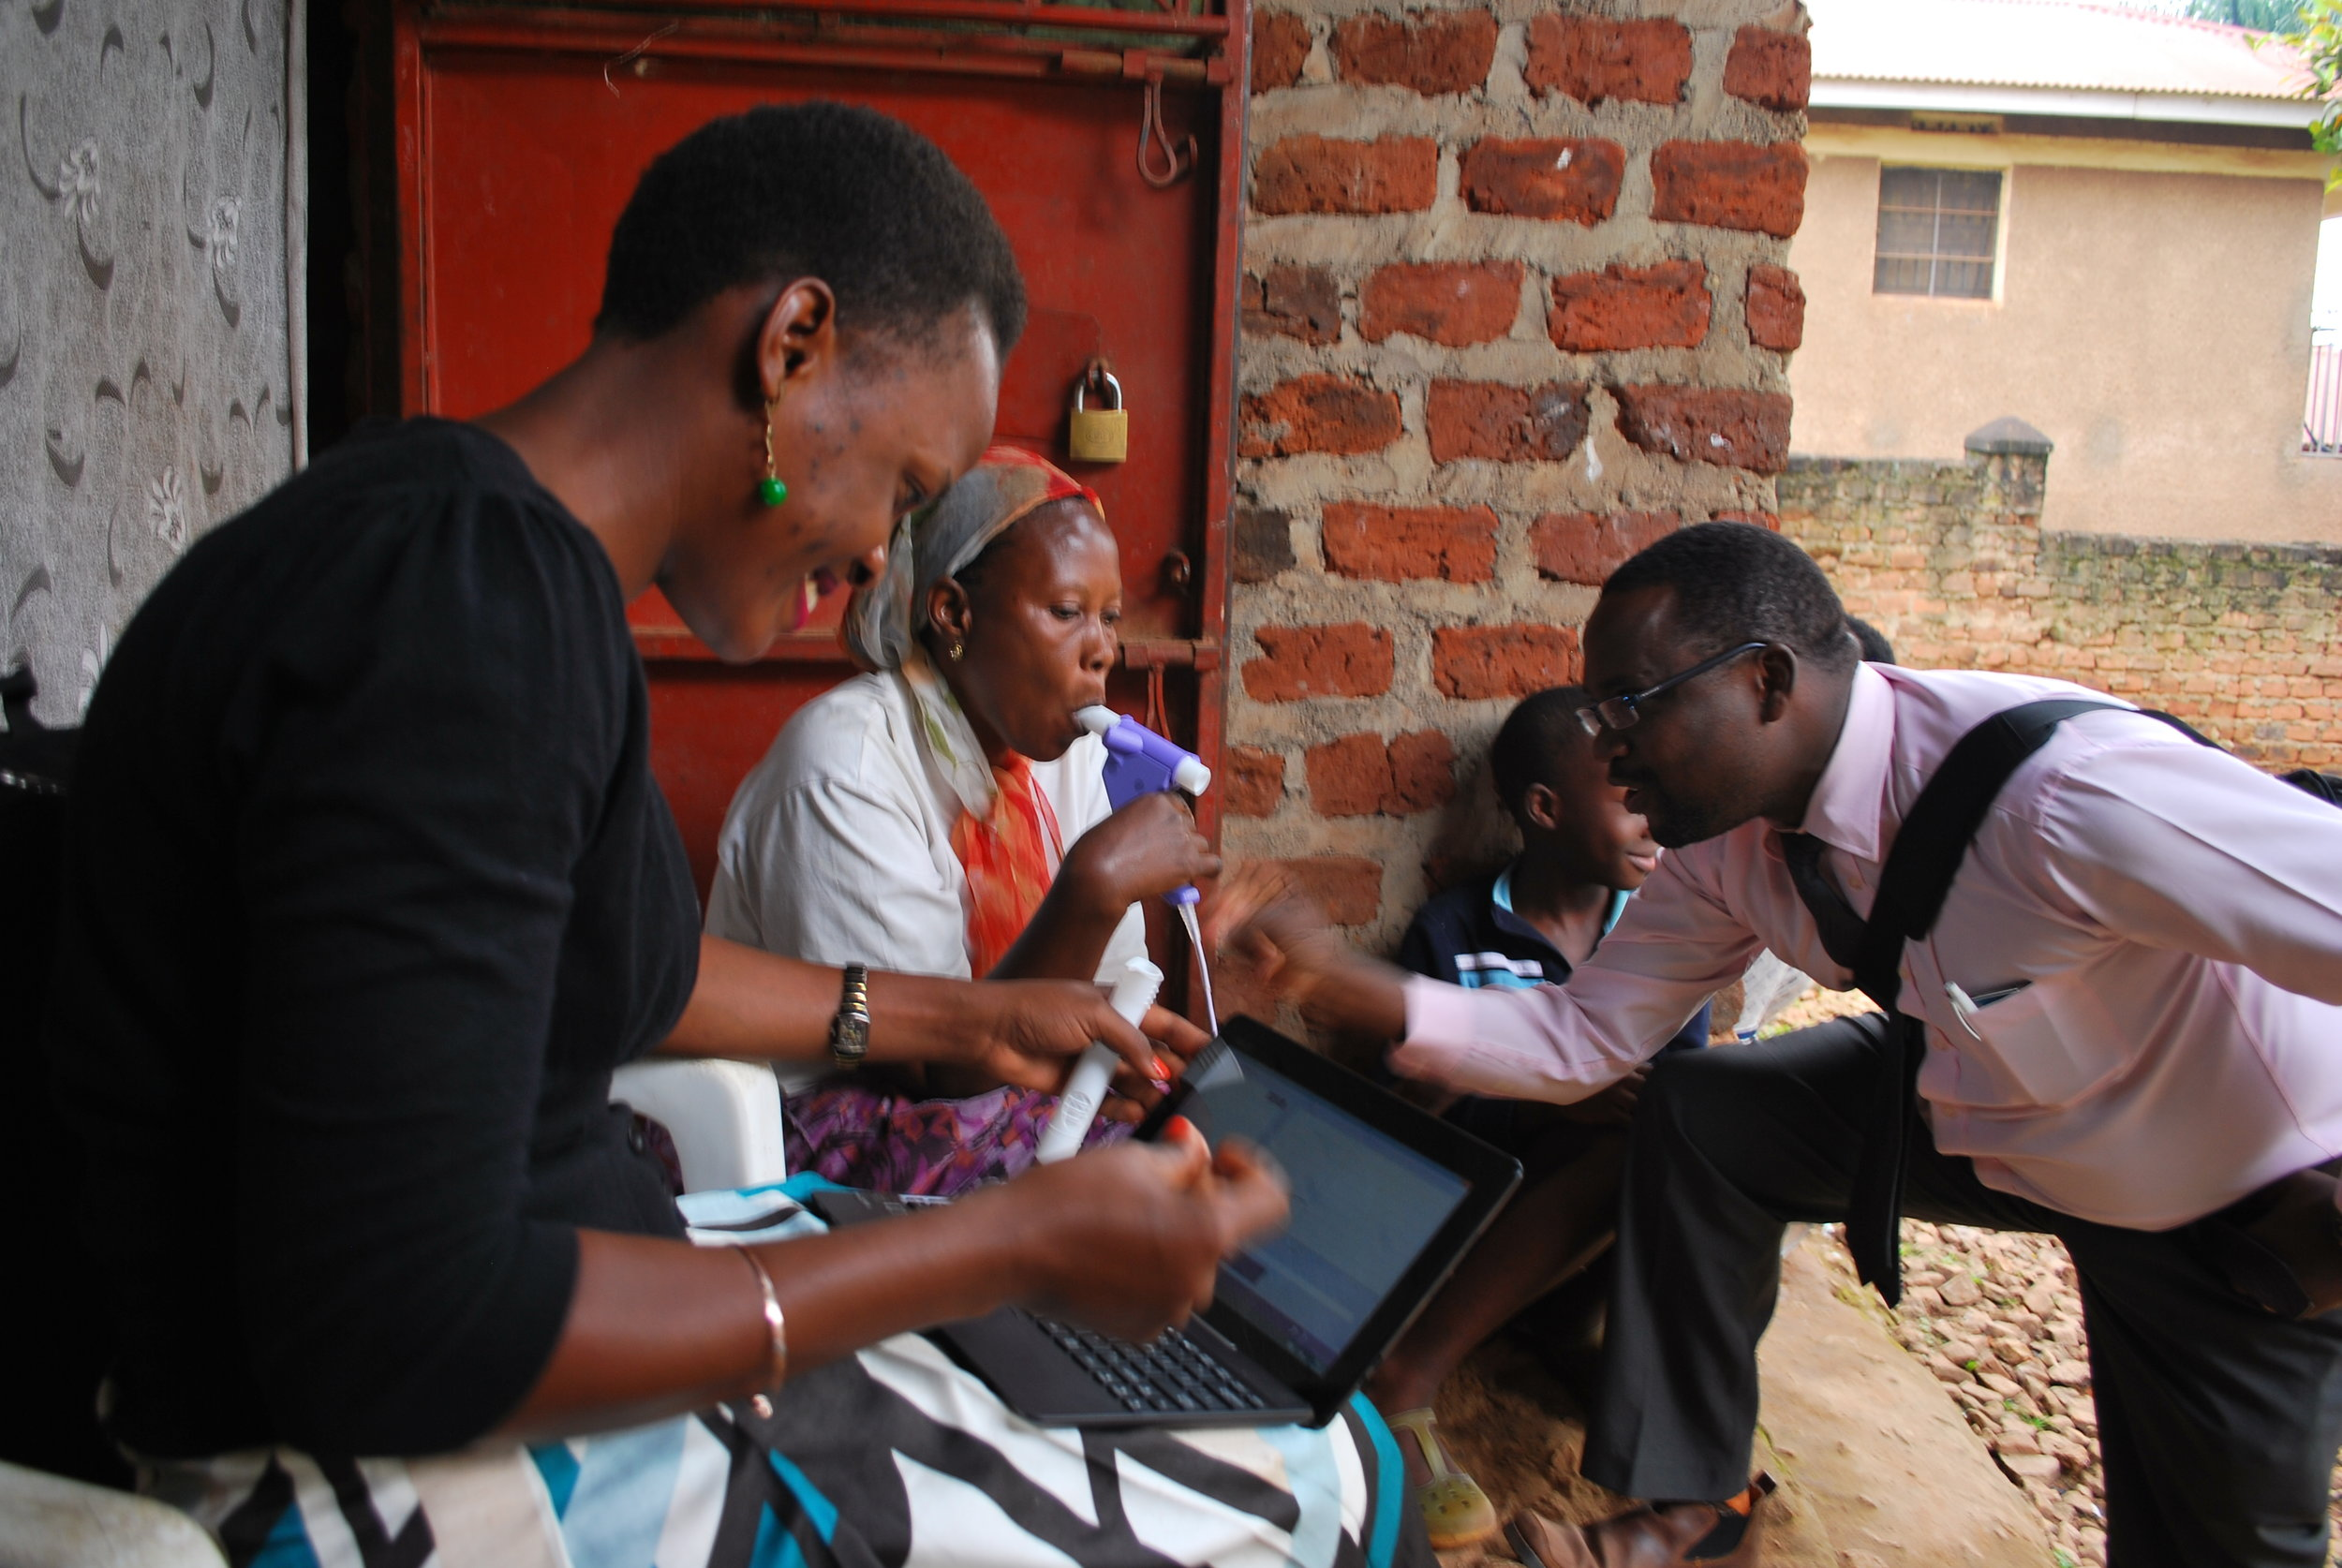 Field worker Faith and Dr. Bruce Kirenga perform spirometry with a study participant in Kampala.